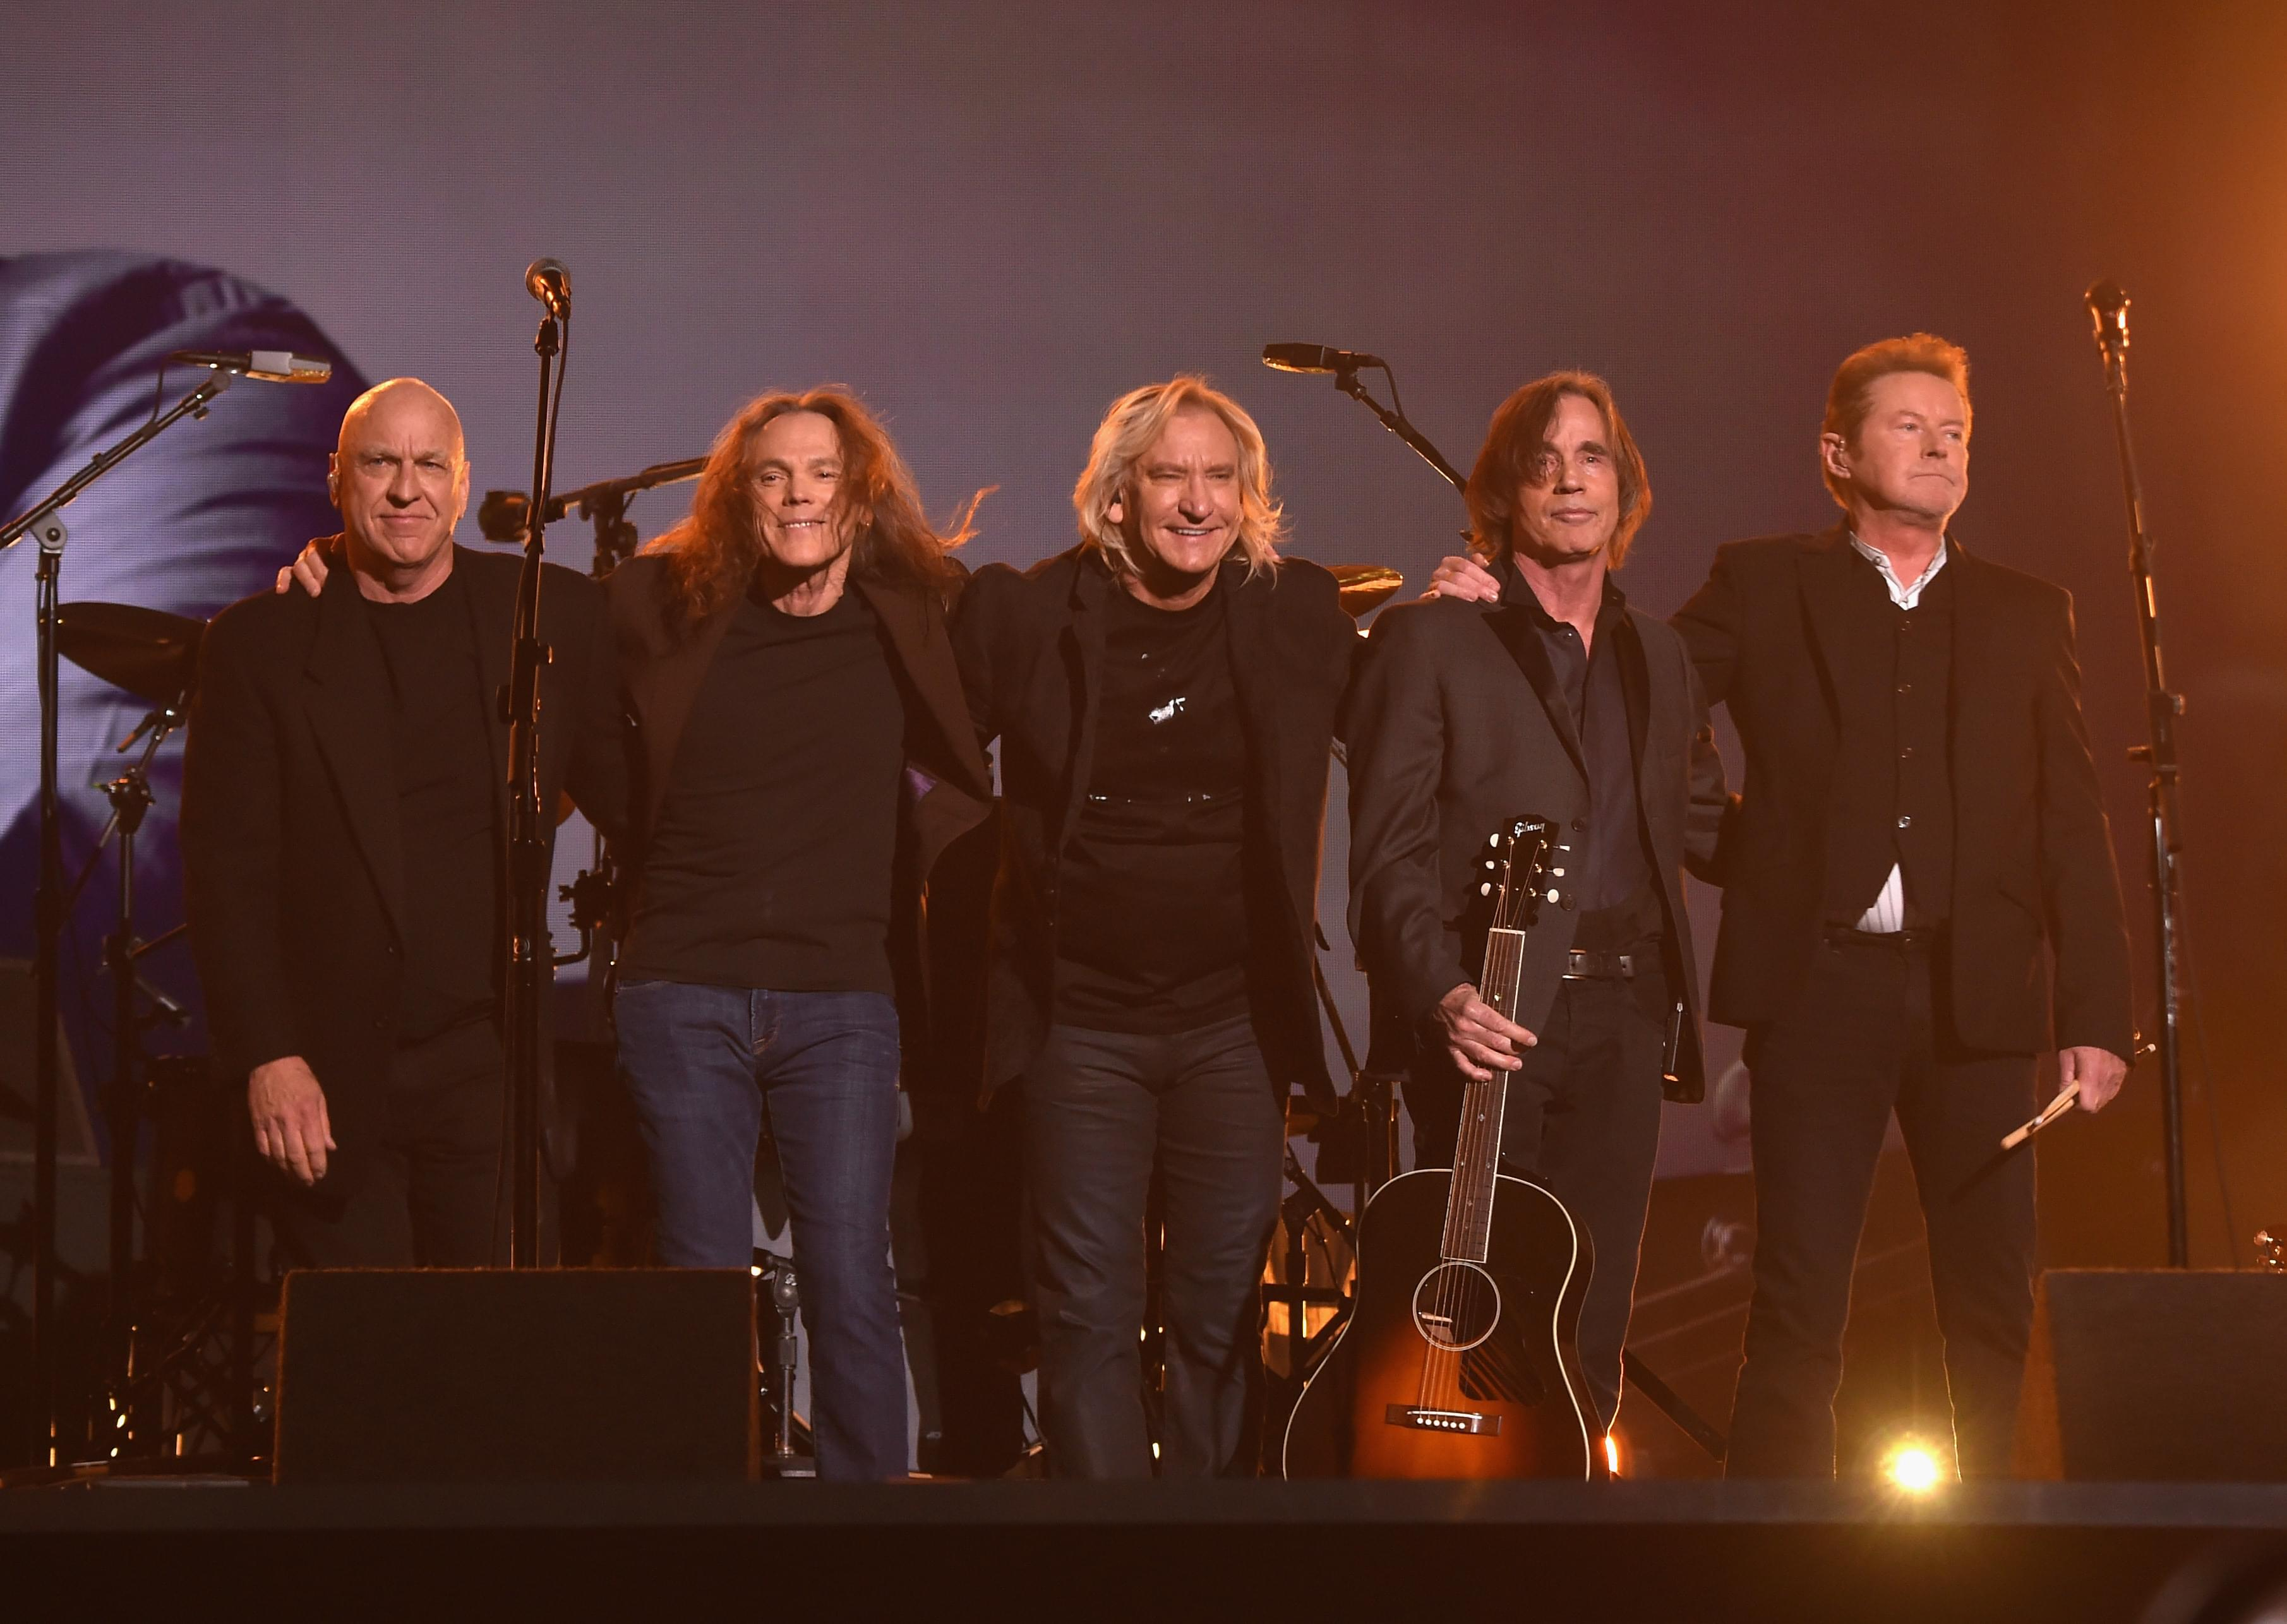 Eagles Tour 2020.The Eagles Announce 2020 Hotel California Tour 94 7 Wls